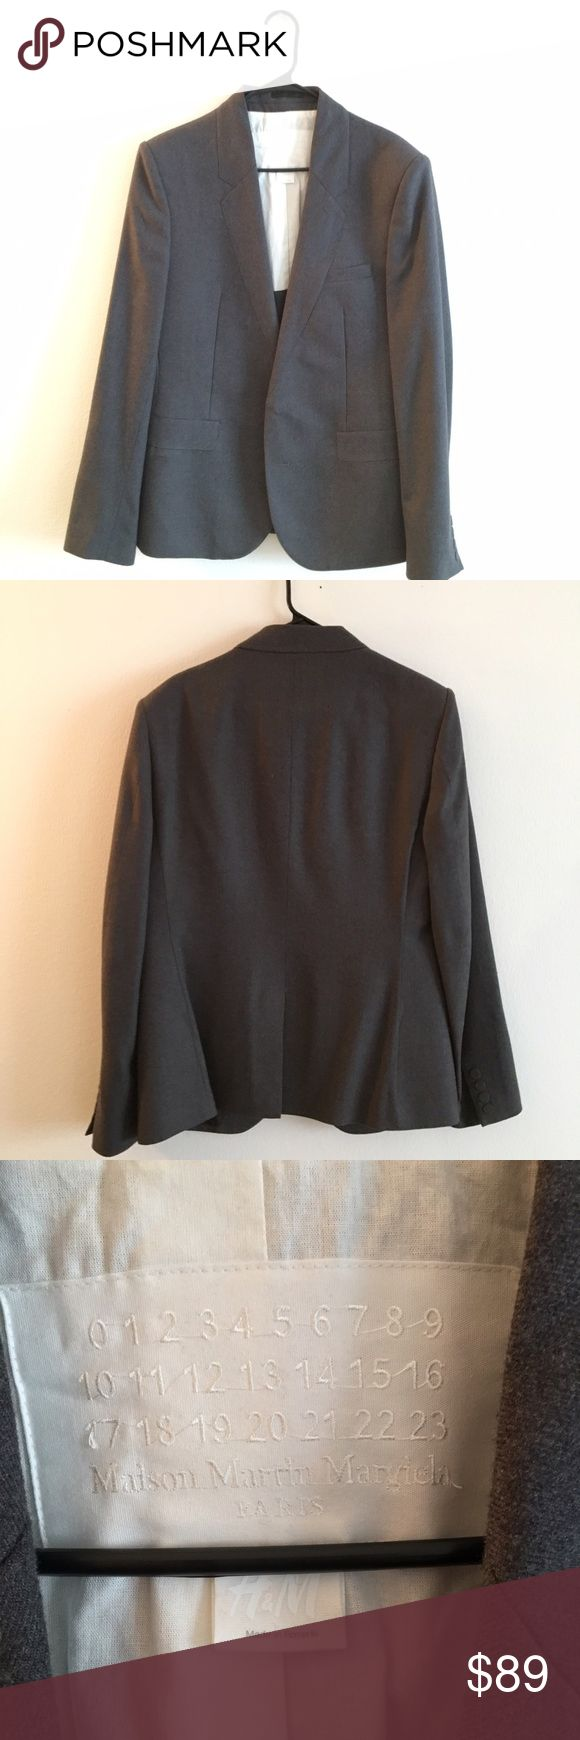 Maison Martin Margiela Sport Jacket Men's Sport Jacket Size 44R Perfect Condition. 98% Wool Maison Martin Margiela for H&M Jackets & Coats Lightweight & Shirt Jackets